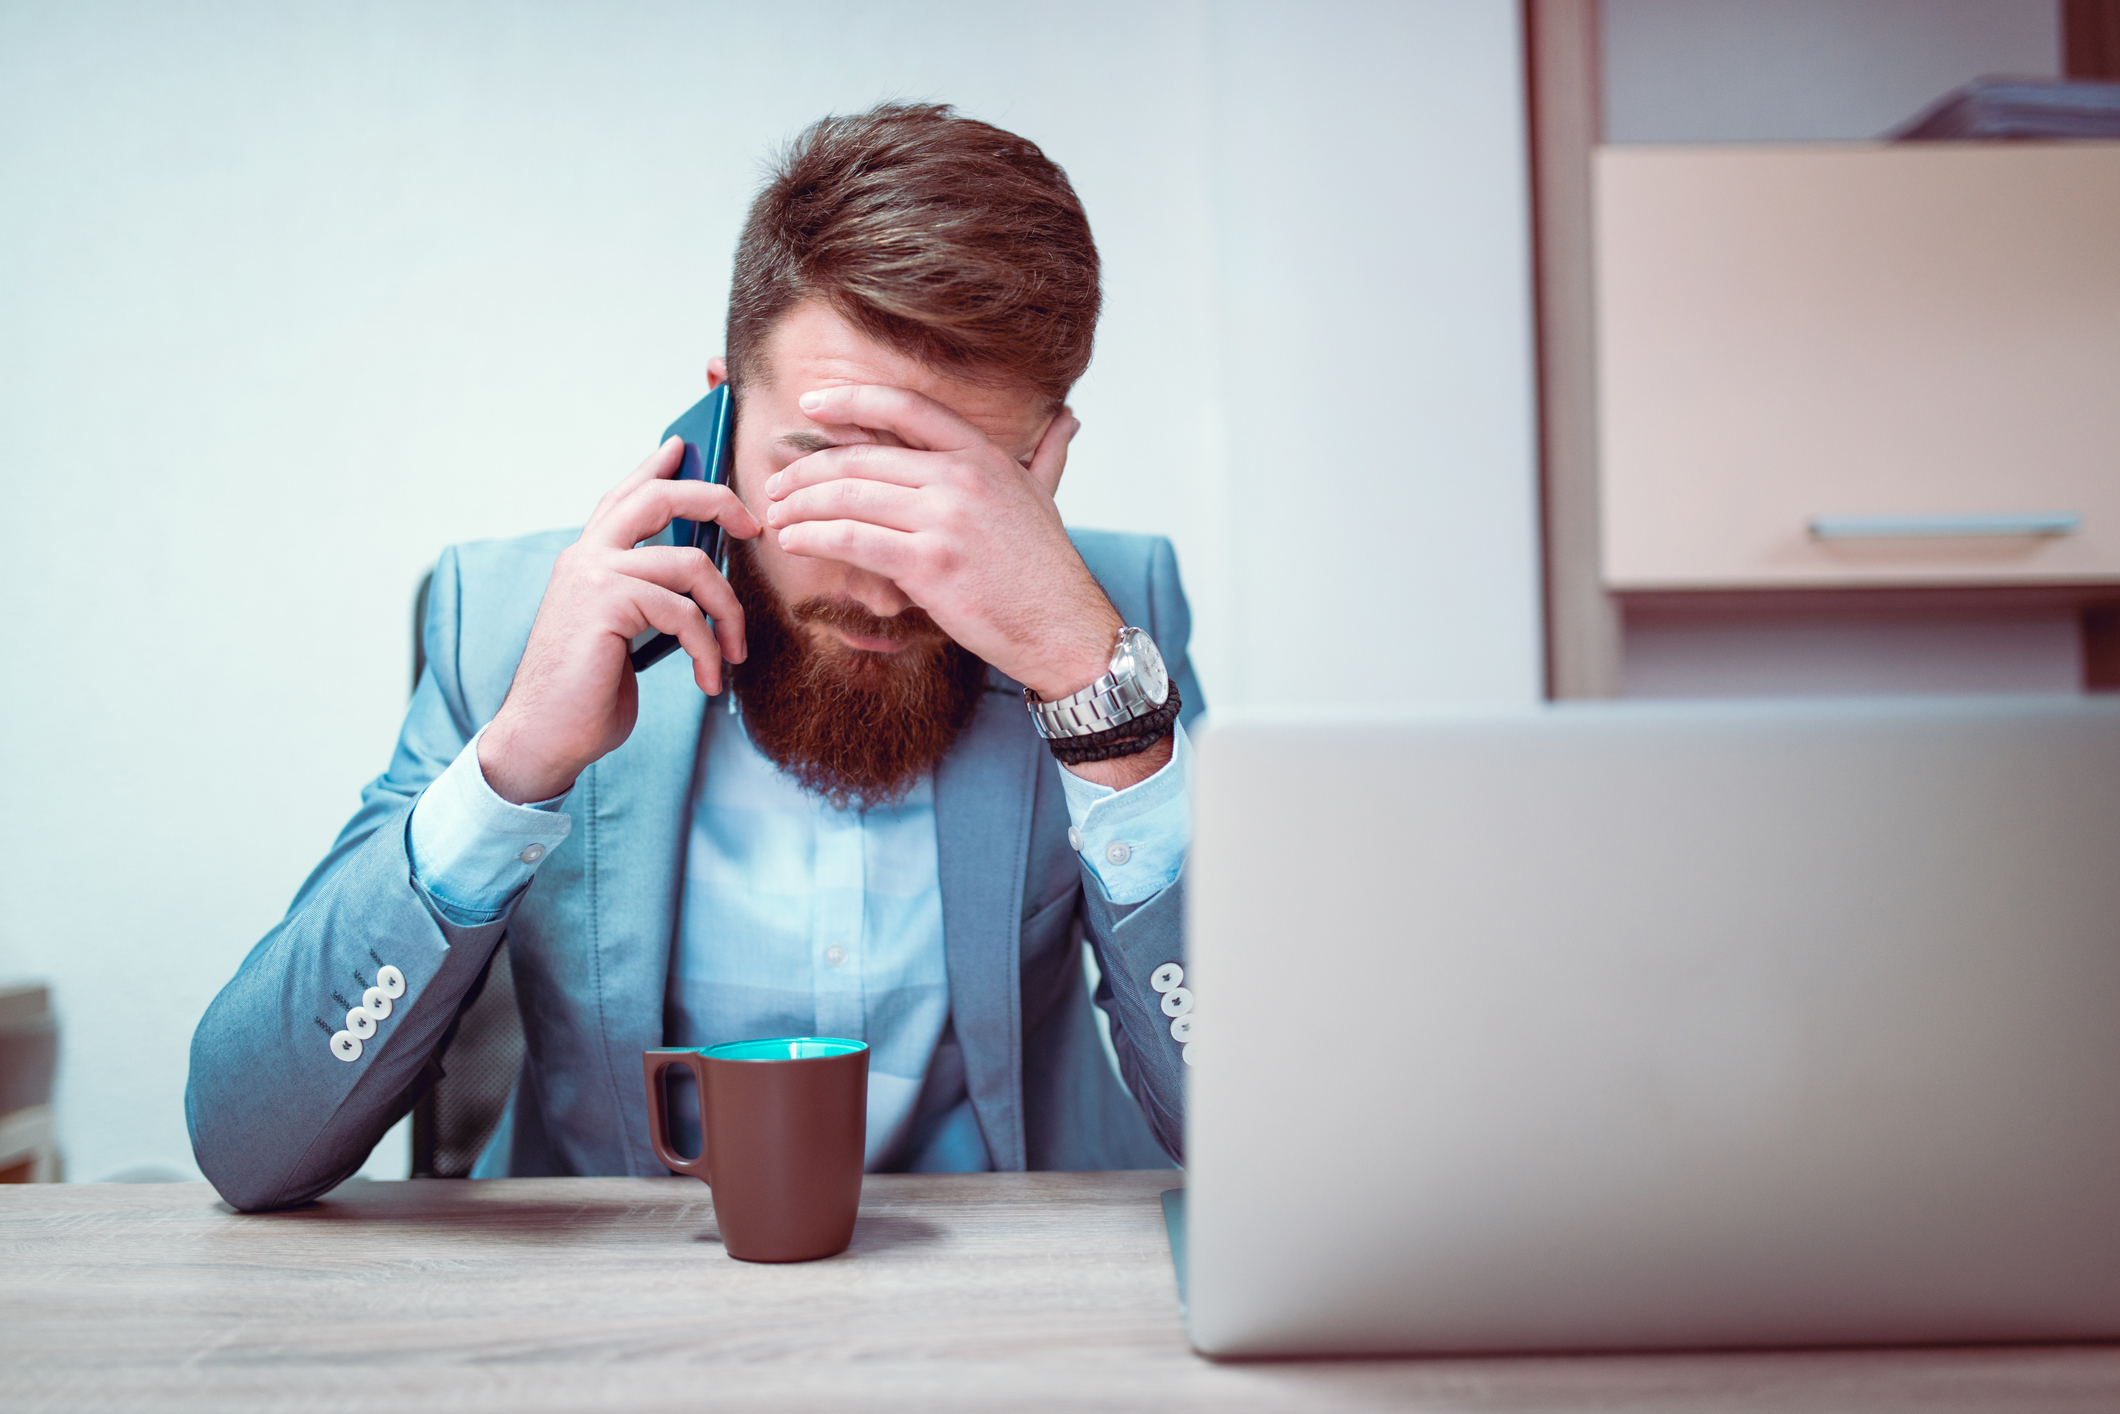 Photo of a young frustrated businessman with his hands on his face, he is exhausted and worried about his work problems. Talking on his mobile phone in front og his laptop computer and coffee mug.